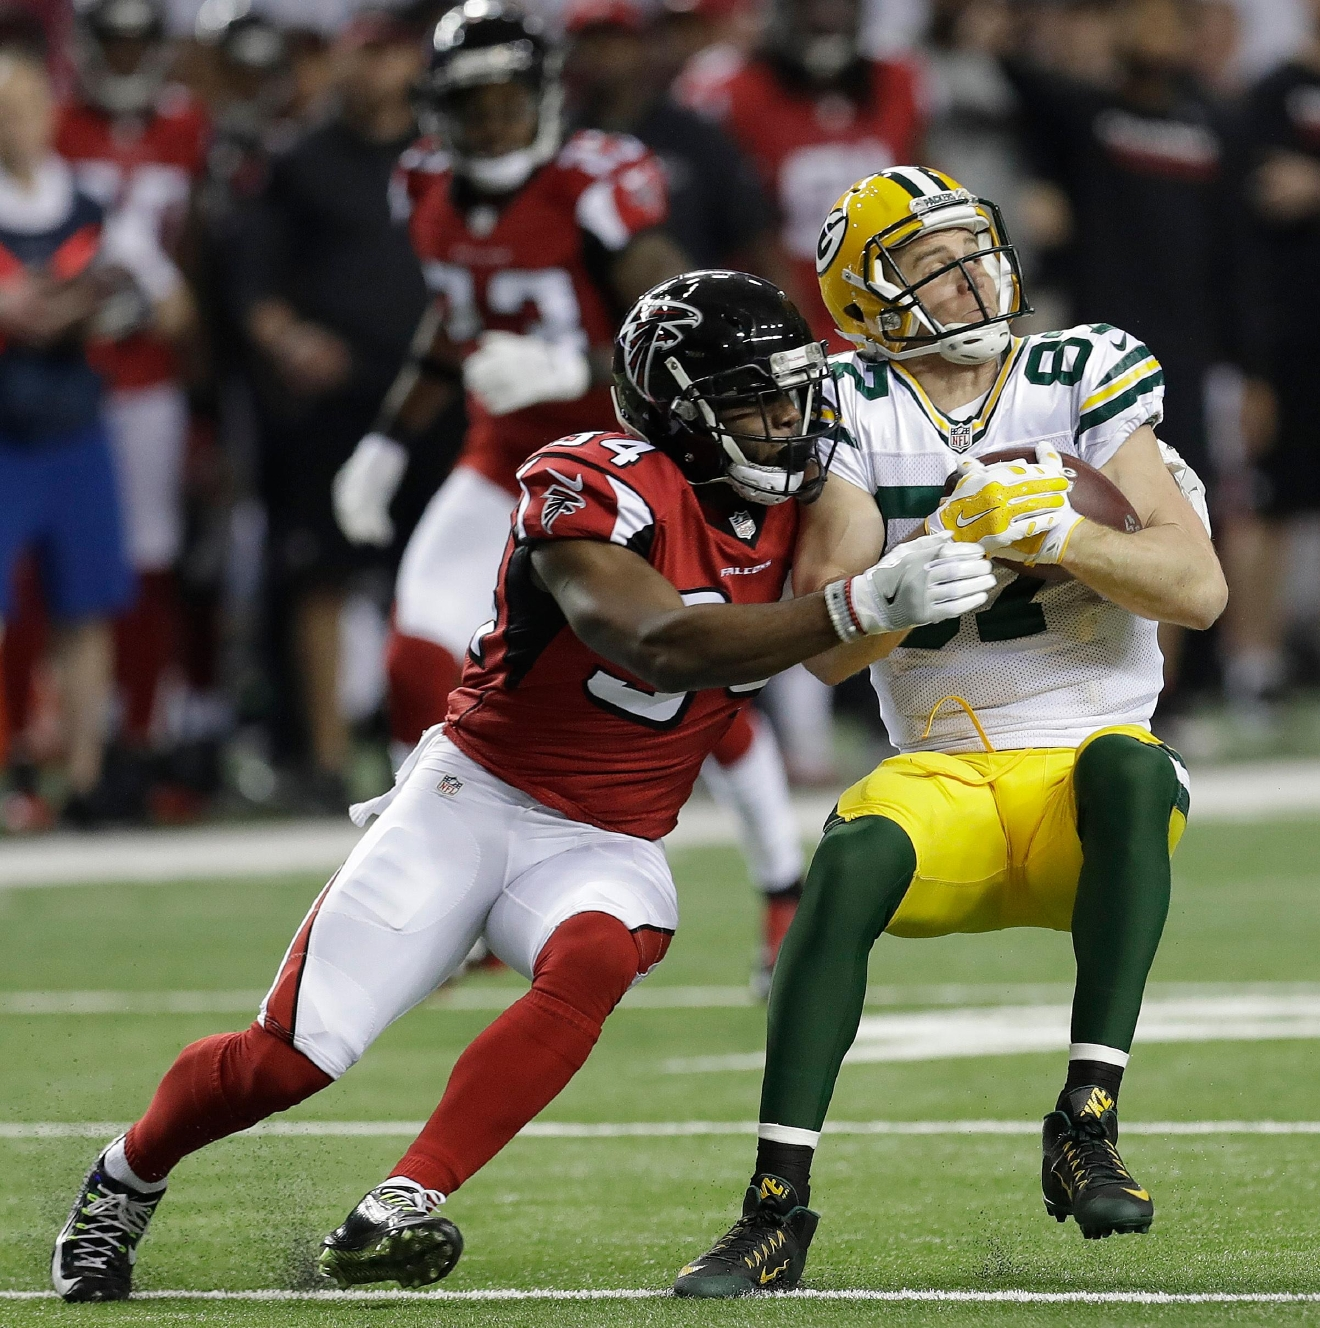 Green Bay Packers' Jordy Nelson catches a pass in front of Atlanta Falcons' Brian Poole during the first half of the NFC championship game, Sunday, Jan. 22, 2017, in Atlanta. (AP Photo/David J. Phillip)